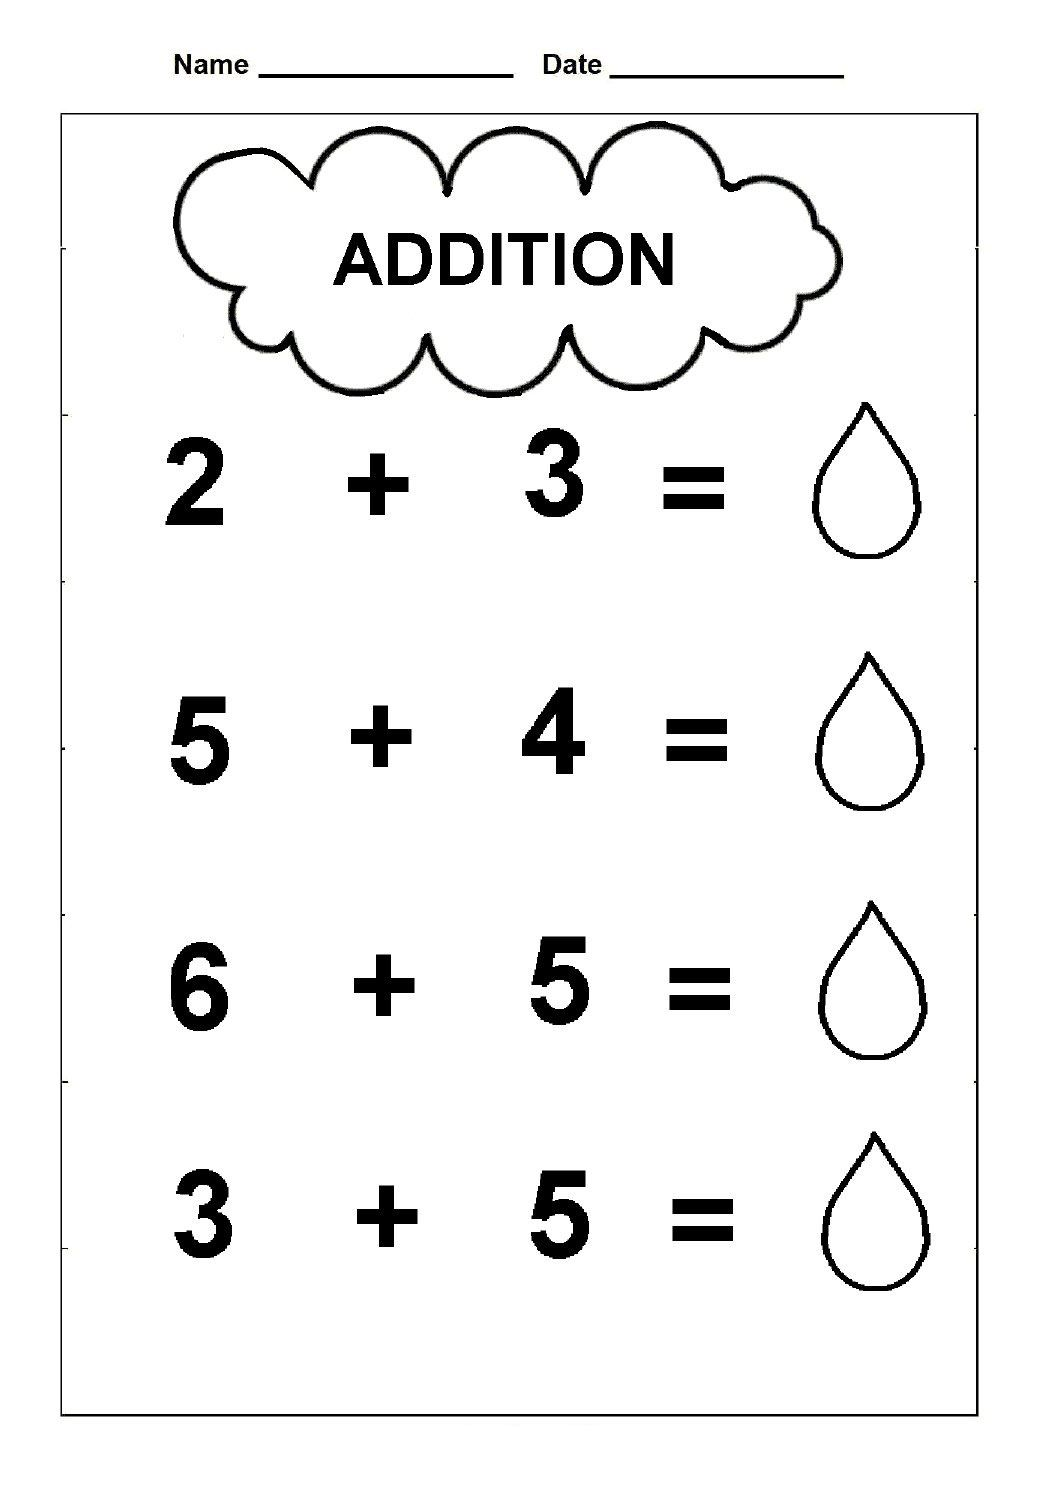 Free Printable Simple Addition Worksheets For Kids {PDF